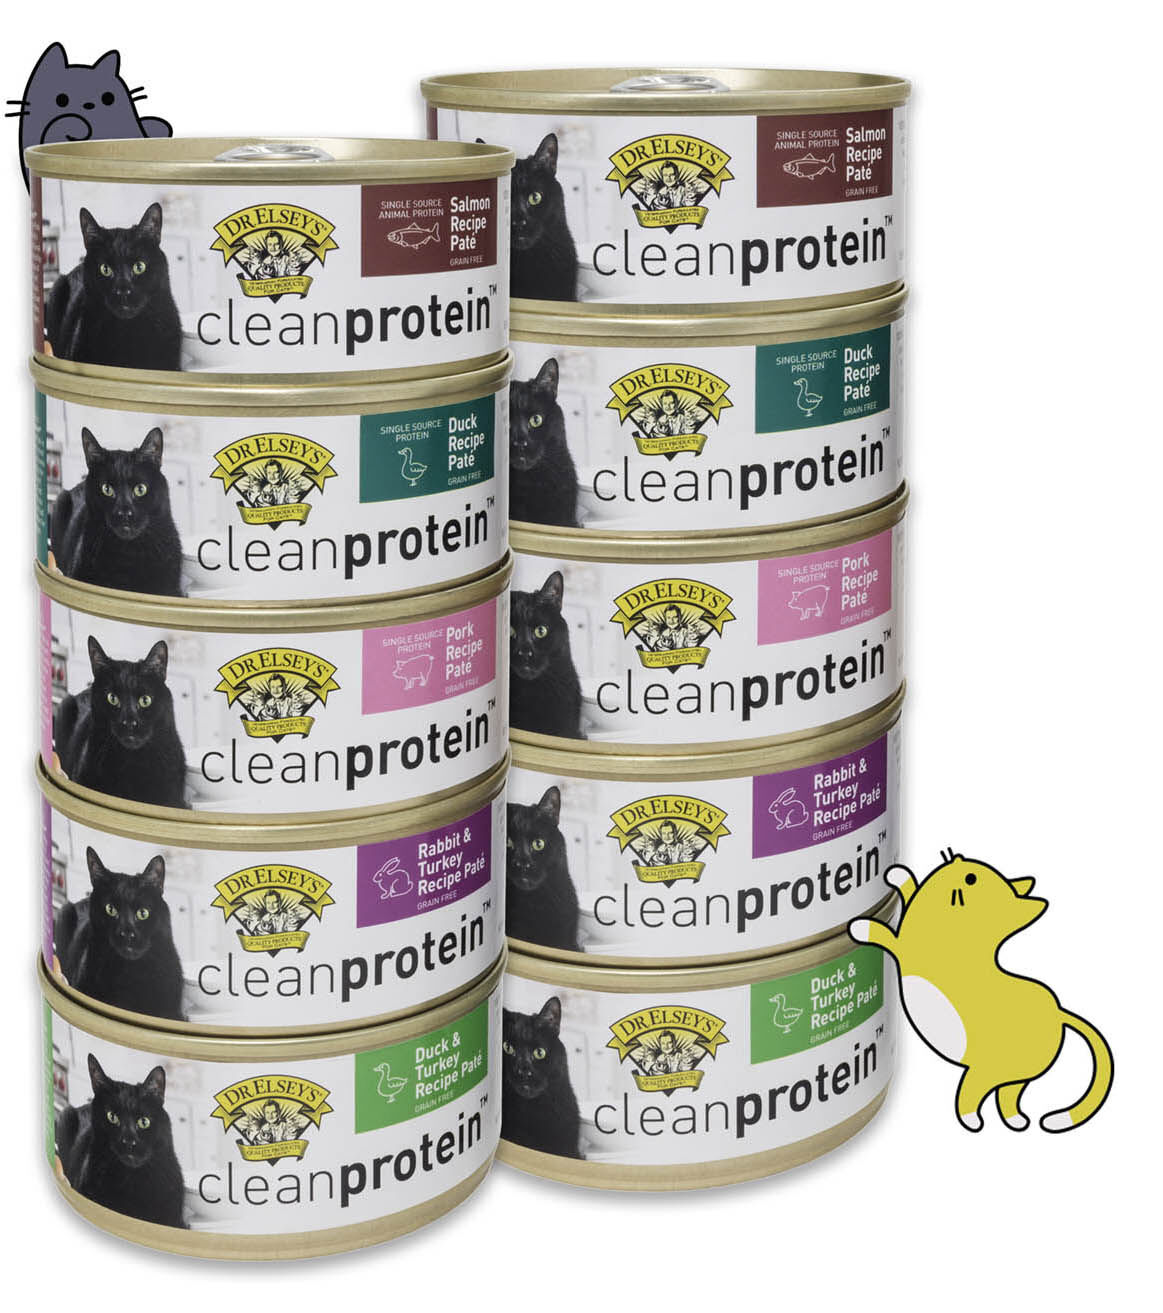 Dr. Elsey's Cat Products Cleanprotein Pâté in new recipes